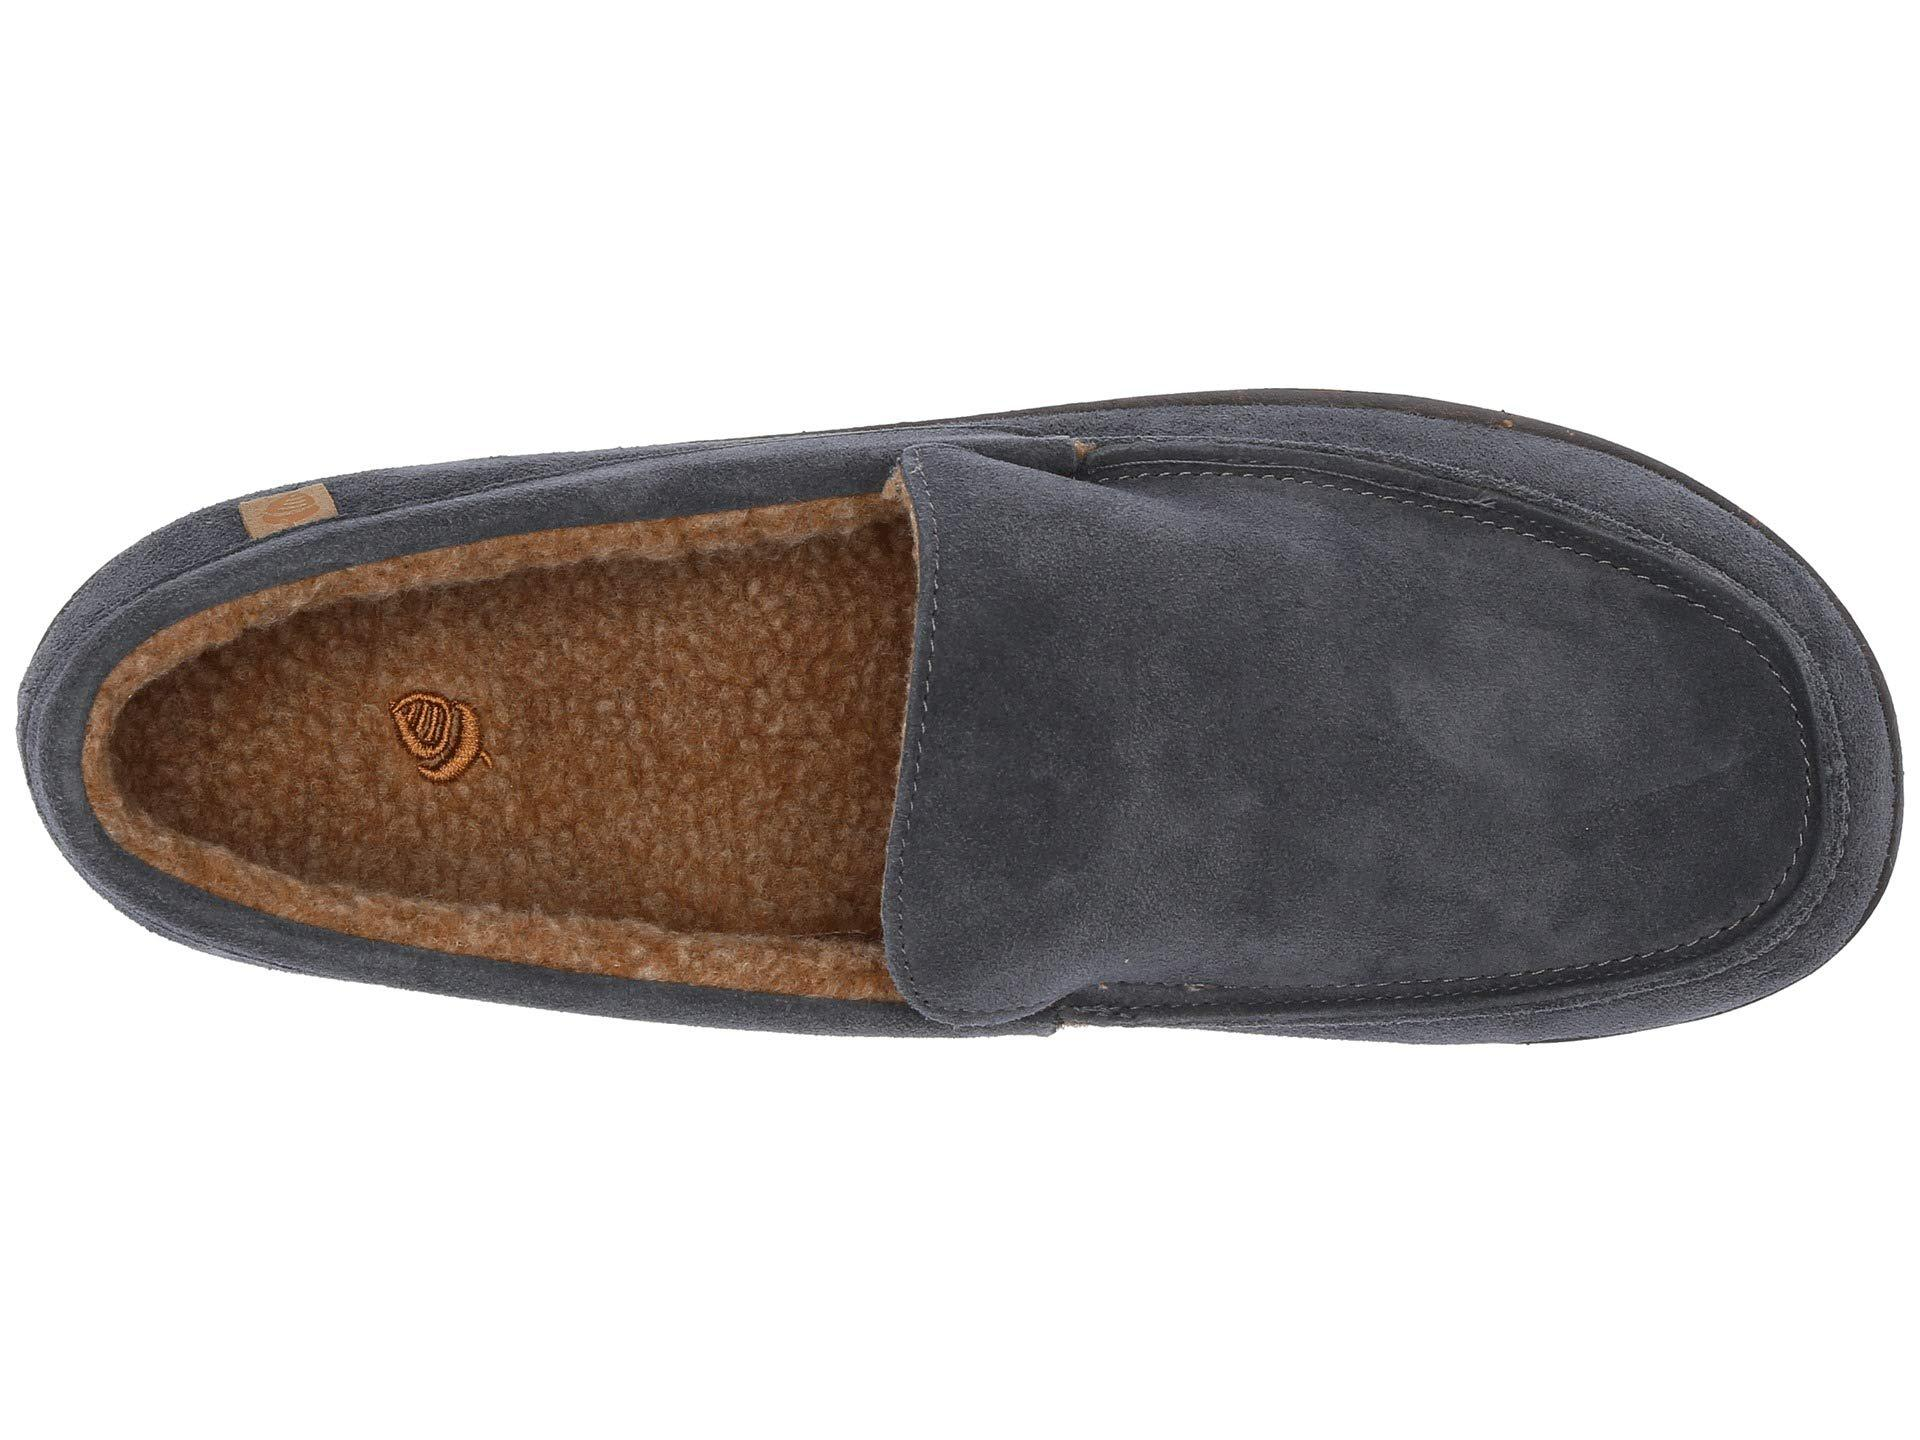 d61ccb4f7d0 Lyst - Acorn Ellsworth Suede Moc (black) Men's Slippers in Black for Men